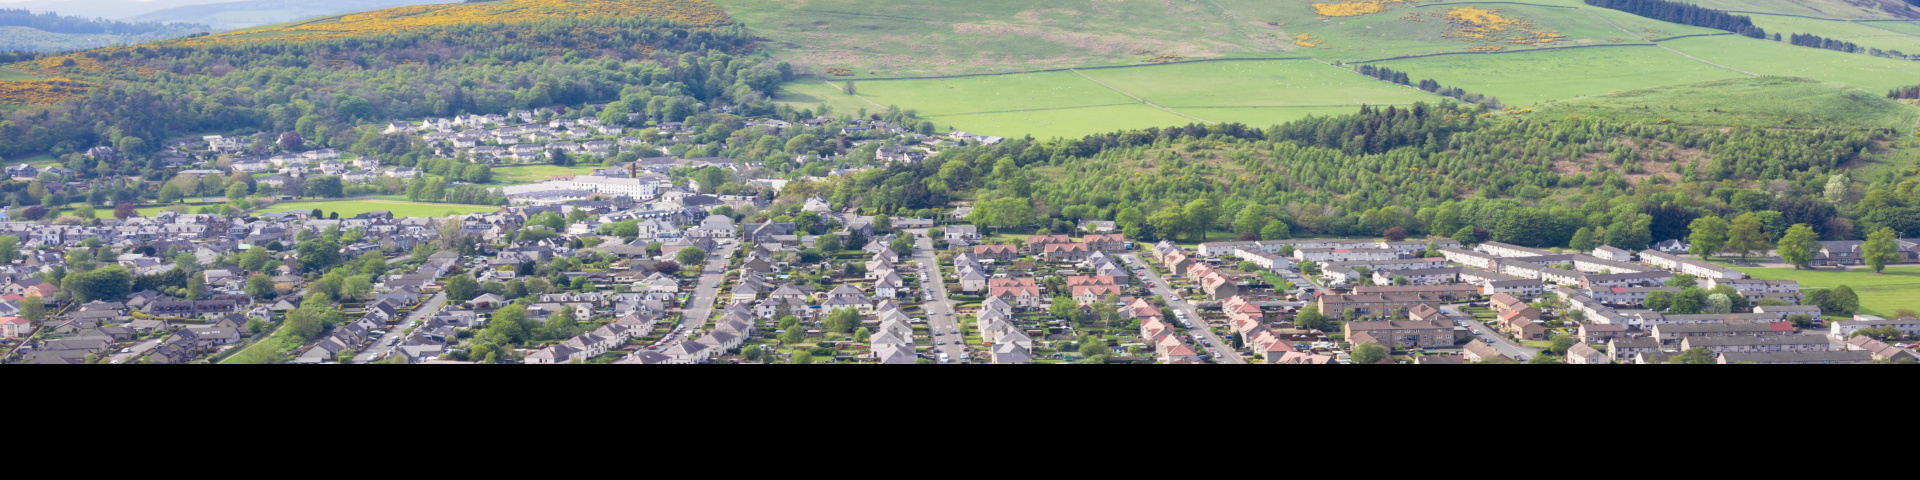 Mixed use landscape showing urban and rural land in Scotland. Credit: iStock.com - georgeclerk.